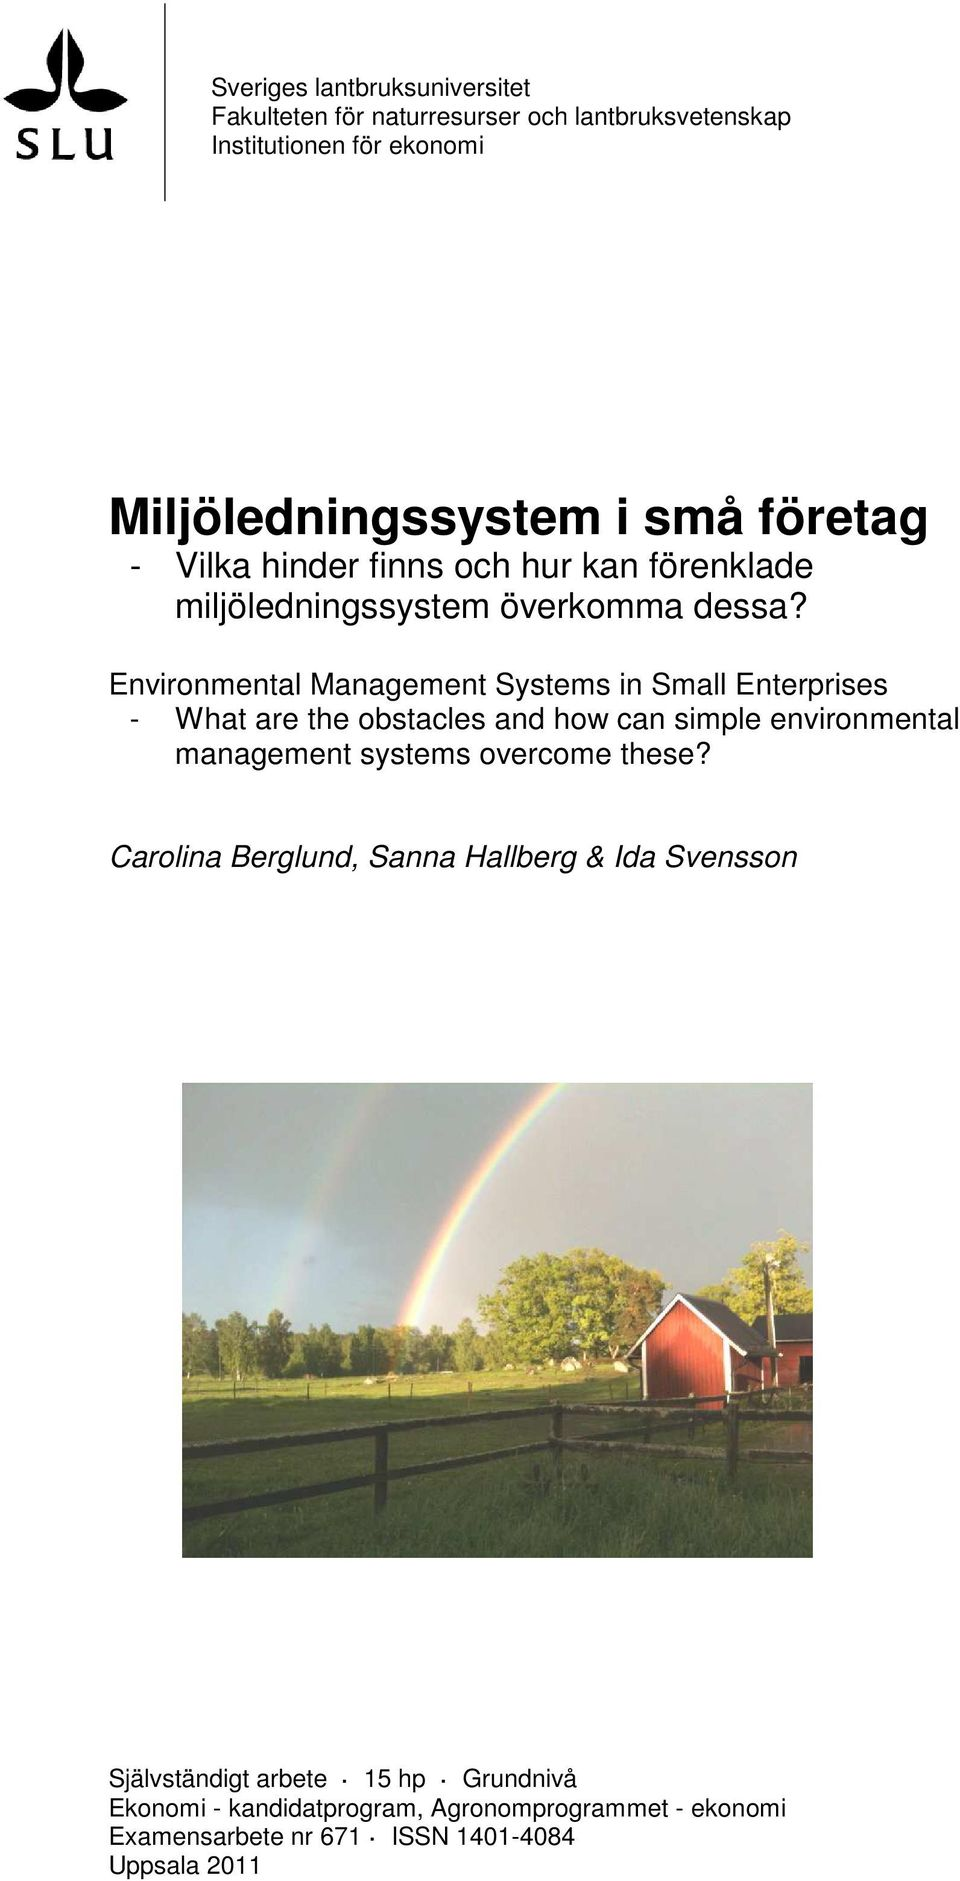 Environmental Management Systems in Small Enterprises - What are the obstacles and how can simple environmental management systems overcome